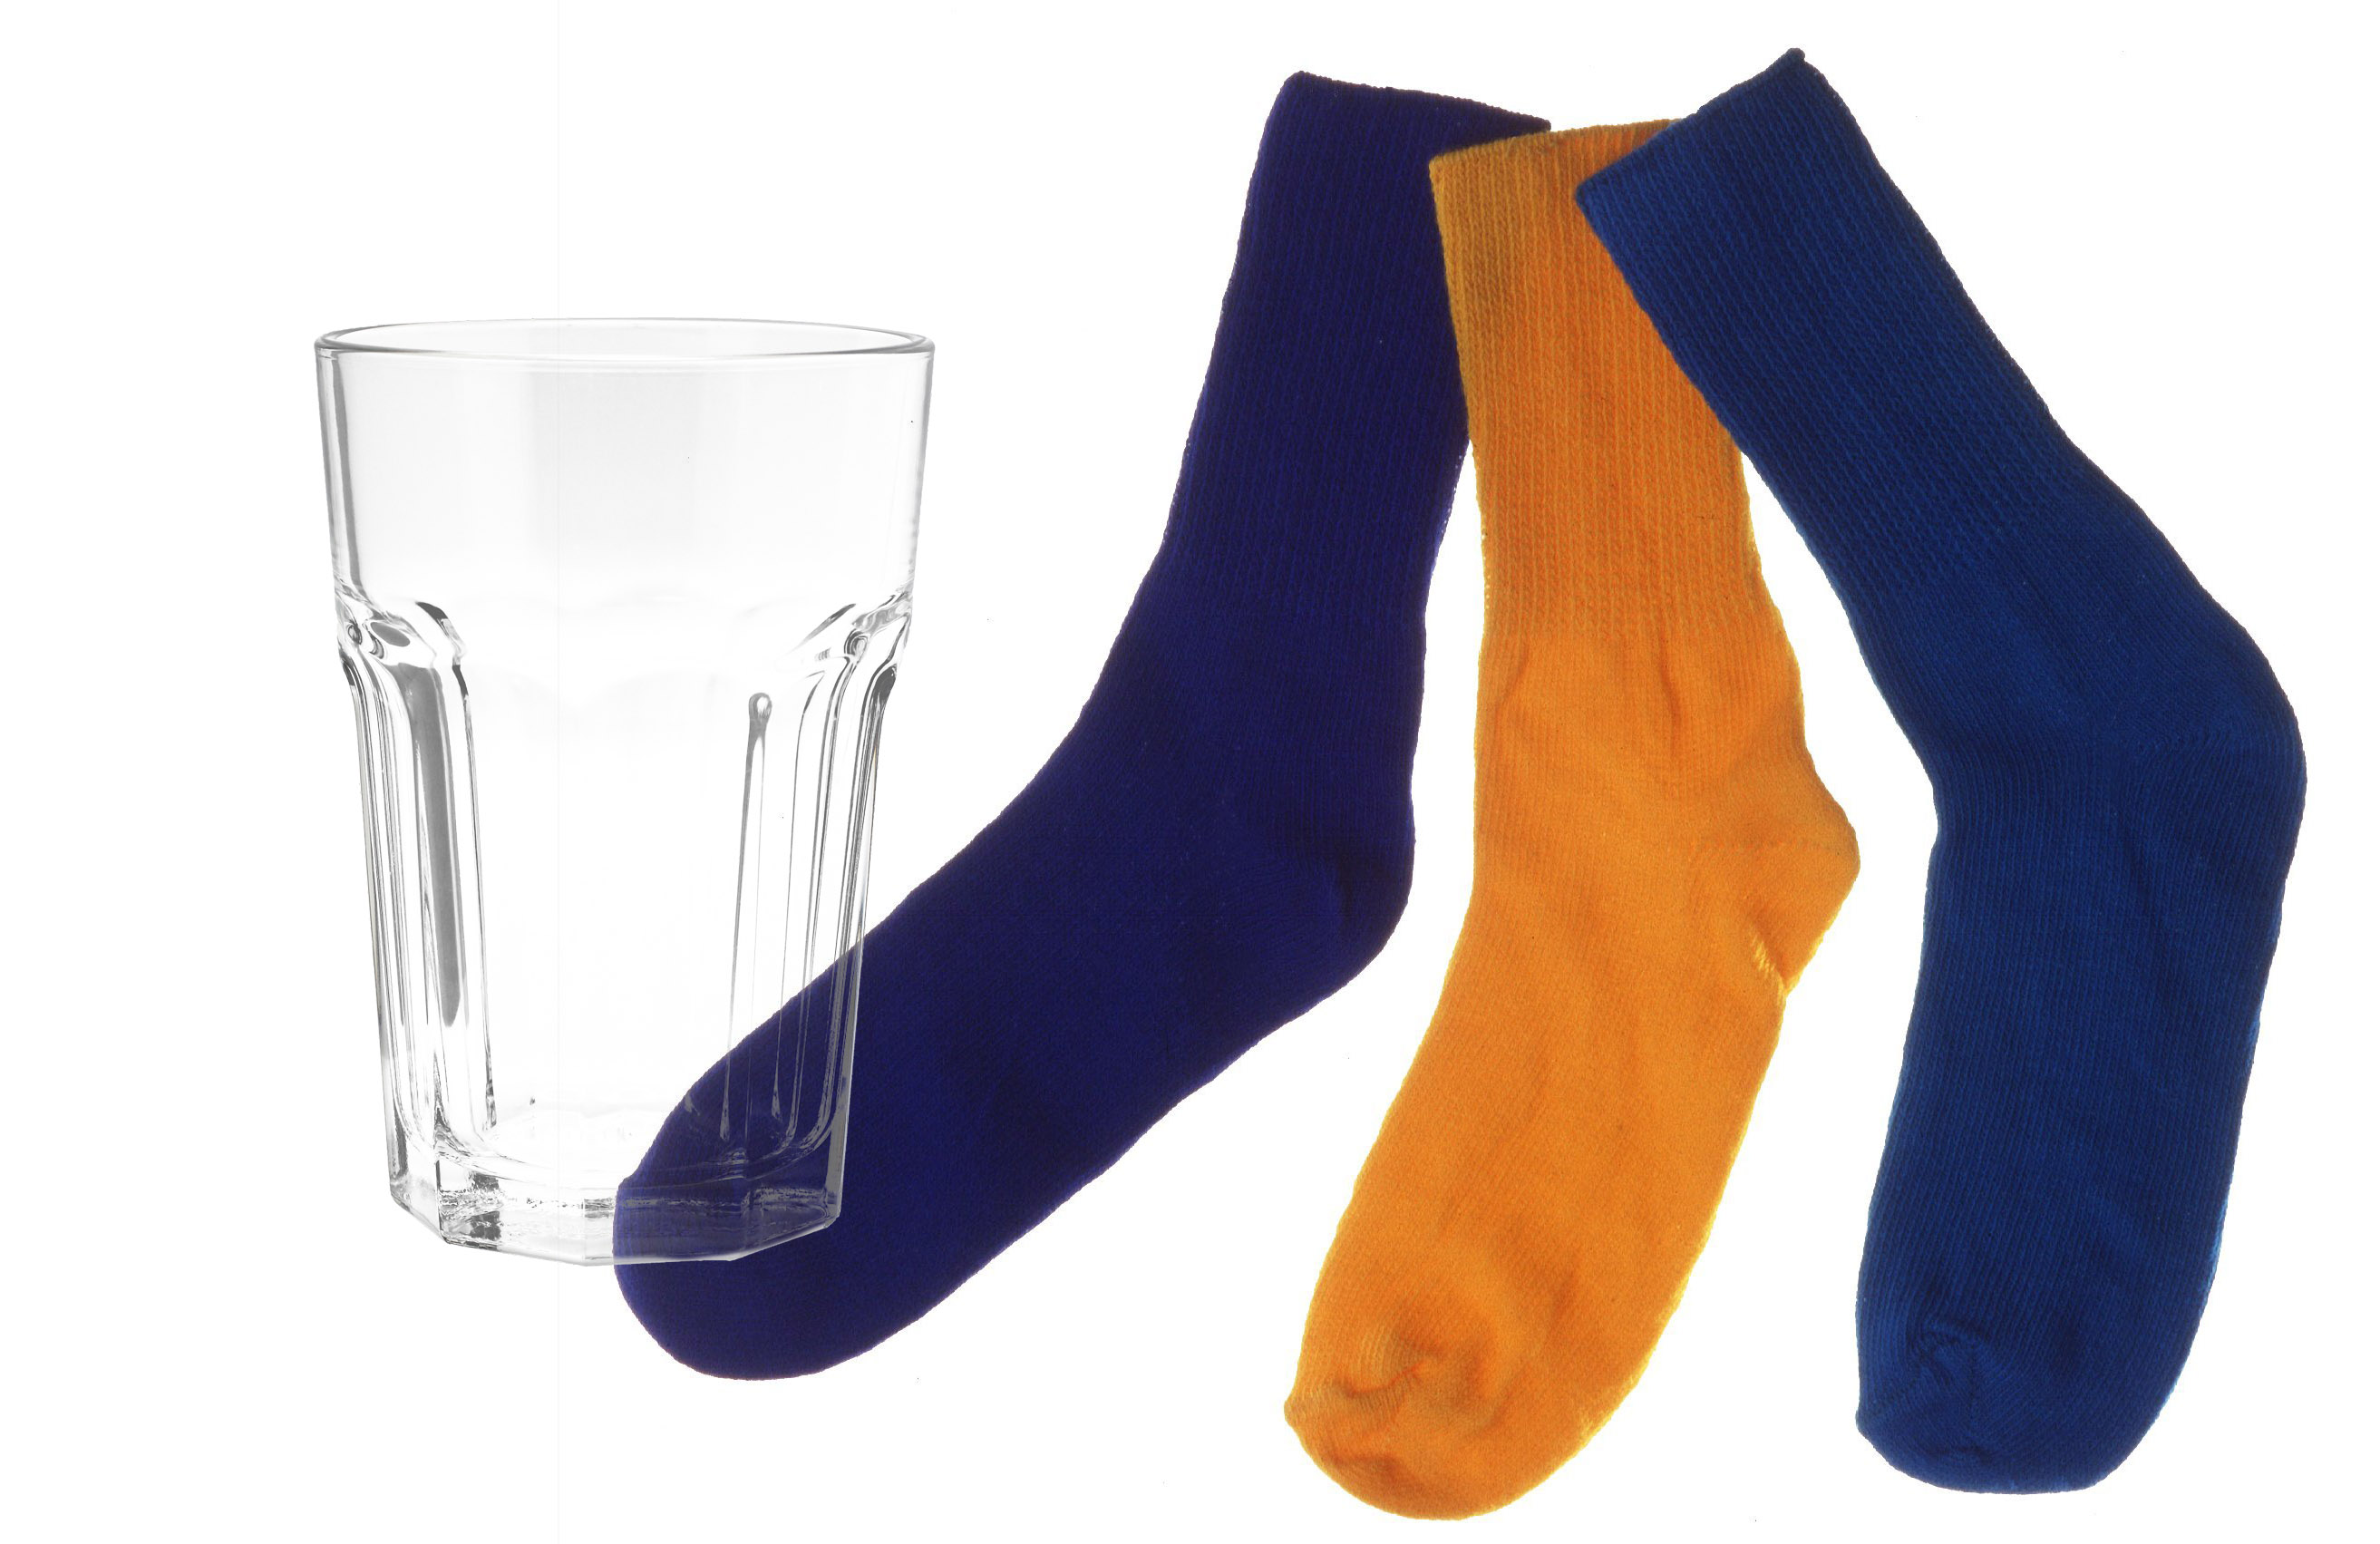 A clear water glass juxtaposed with some socks.